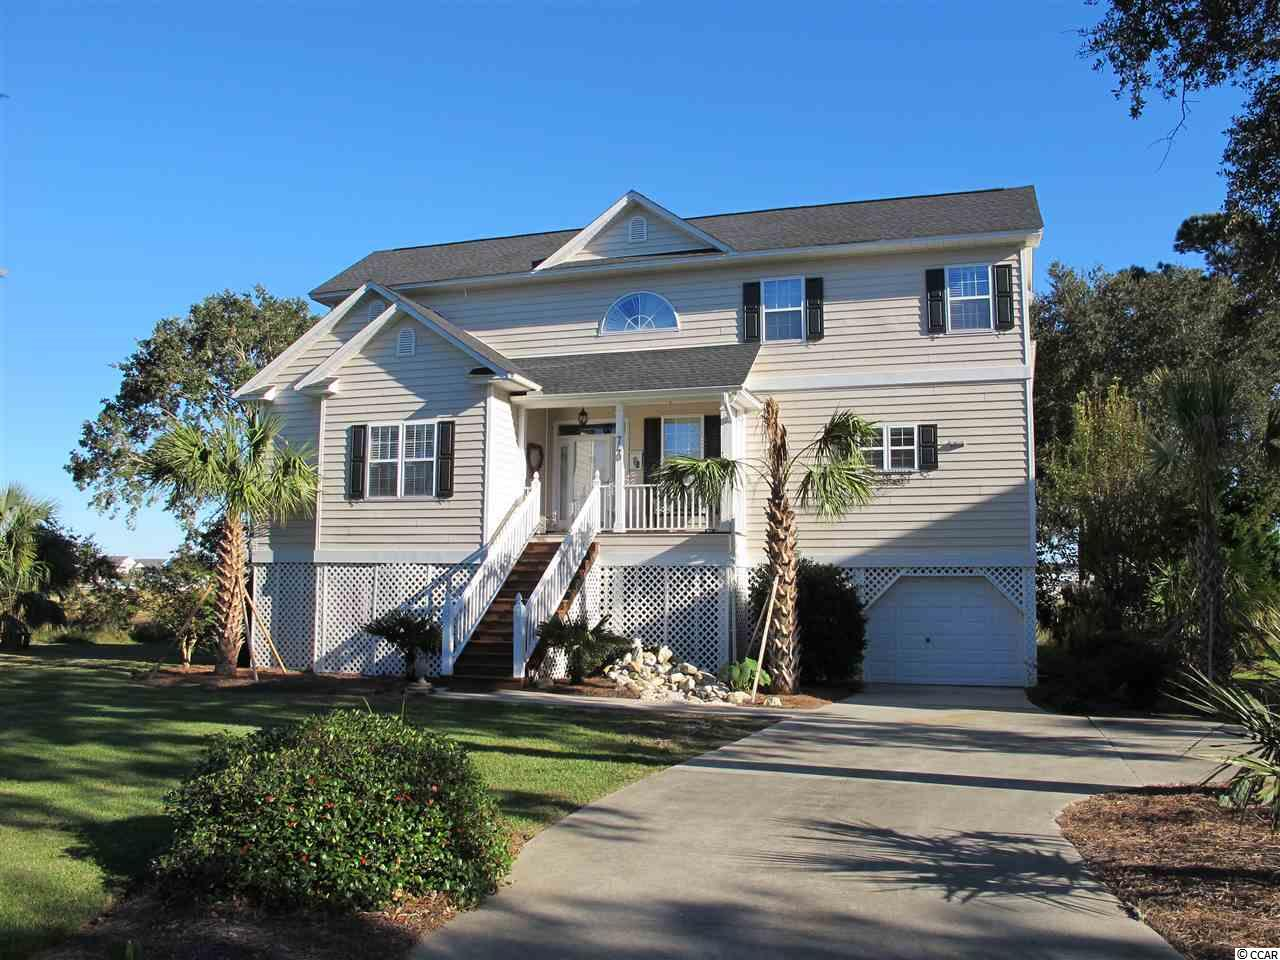 MAGNIFICENT Custom built home. Your clients will love this home and serenity yet so close to the beach.  REDUCED TO SELL !!  740 Elizabeth Drive @ SOUTH MARSH. This is a laid back and hidden treasure community located in Garden City Beach. Here you will find spanning marsh views that are spectacular day and night. Sit out on the porches and watch the wildlife and the harmony of the birds singing. Take a short golf cart ride to the beach.   This home is eloquent that flows so well. Featuring hardwood floors, plantation shutters throughout, new kitchen countertop/backsplash with premium exotic Brazillian quartzite. Recently painted & new light fixtures foyer and dining room. Outdoor shower & more features on the detail list. New landscaping with palm trees installed Sept 2018.  New roof 2016.  Home is also being sold furnished except for some antique family items that don't convey. Furniture was all purchased in 2015 and has had limited use.  See list of new upgrades and home improvements to this spectacular home.  Also featuring:  an elevator, and self contained living quarters downstairs on the ground floor with kitchen. Great for mother-in-law suite or keeping your kayaks and more.  Another feature transferable terminex bond & Rainbird irrigation system.  Experience the Marsh views will take your breath away. Oversized deck and screened porch to relax and view the beautiful sunrises and rainbow skies.  A beach & bird lovers delight.  Come see this home first on your list and you will fall in love with the home and features and community.  One more feature comes with 2016 Golf Cart for touring the beach,  shopping, and more adventures.   Home Warranty included with the purchase of the home.